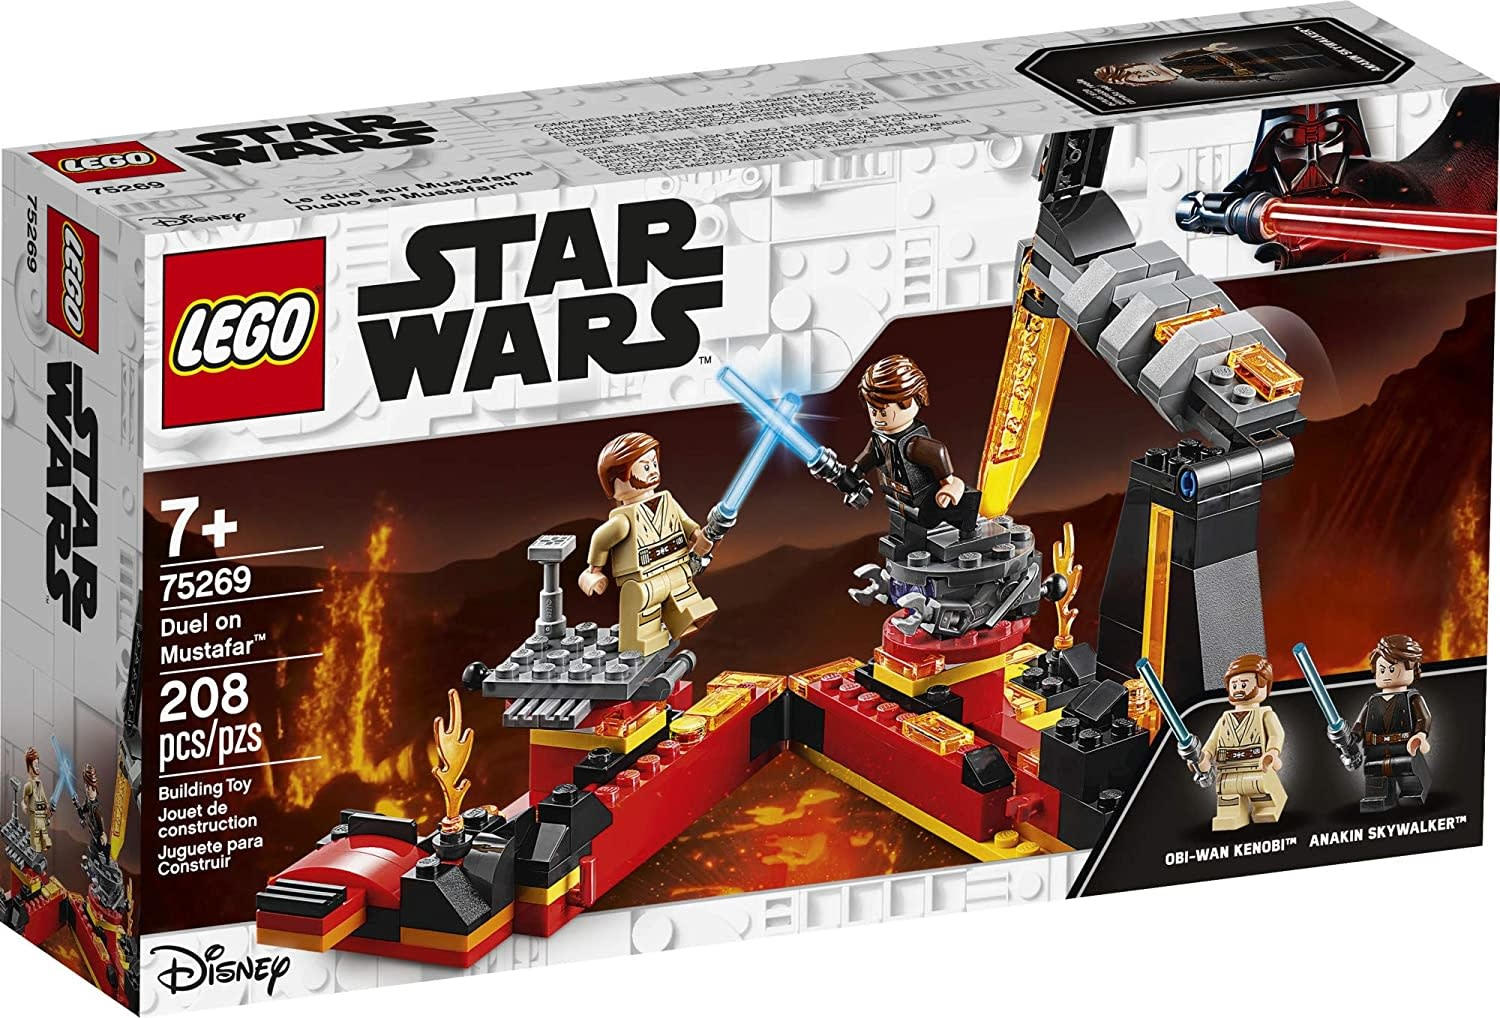 75269 Duel on Mustafar by LEGO Star Wars